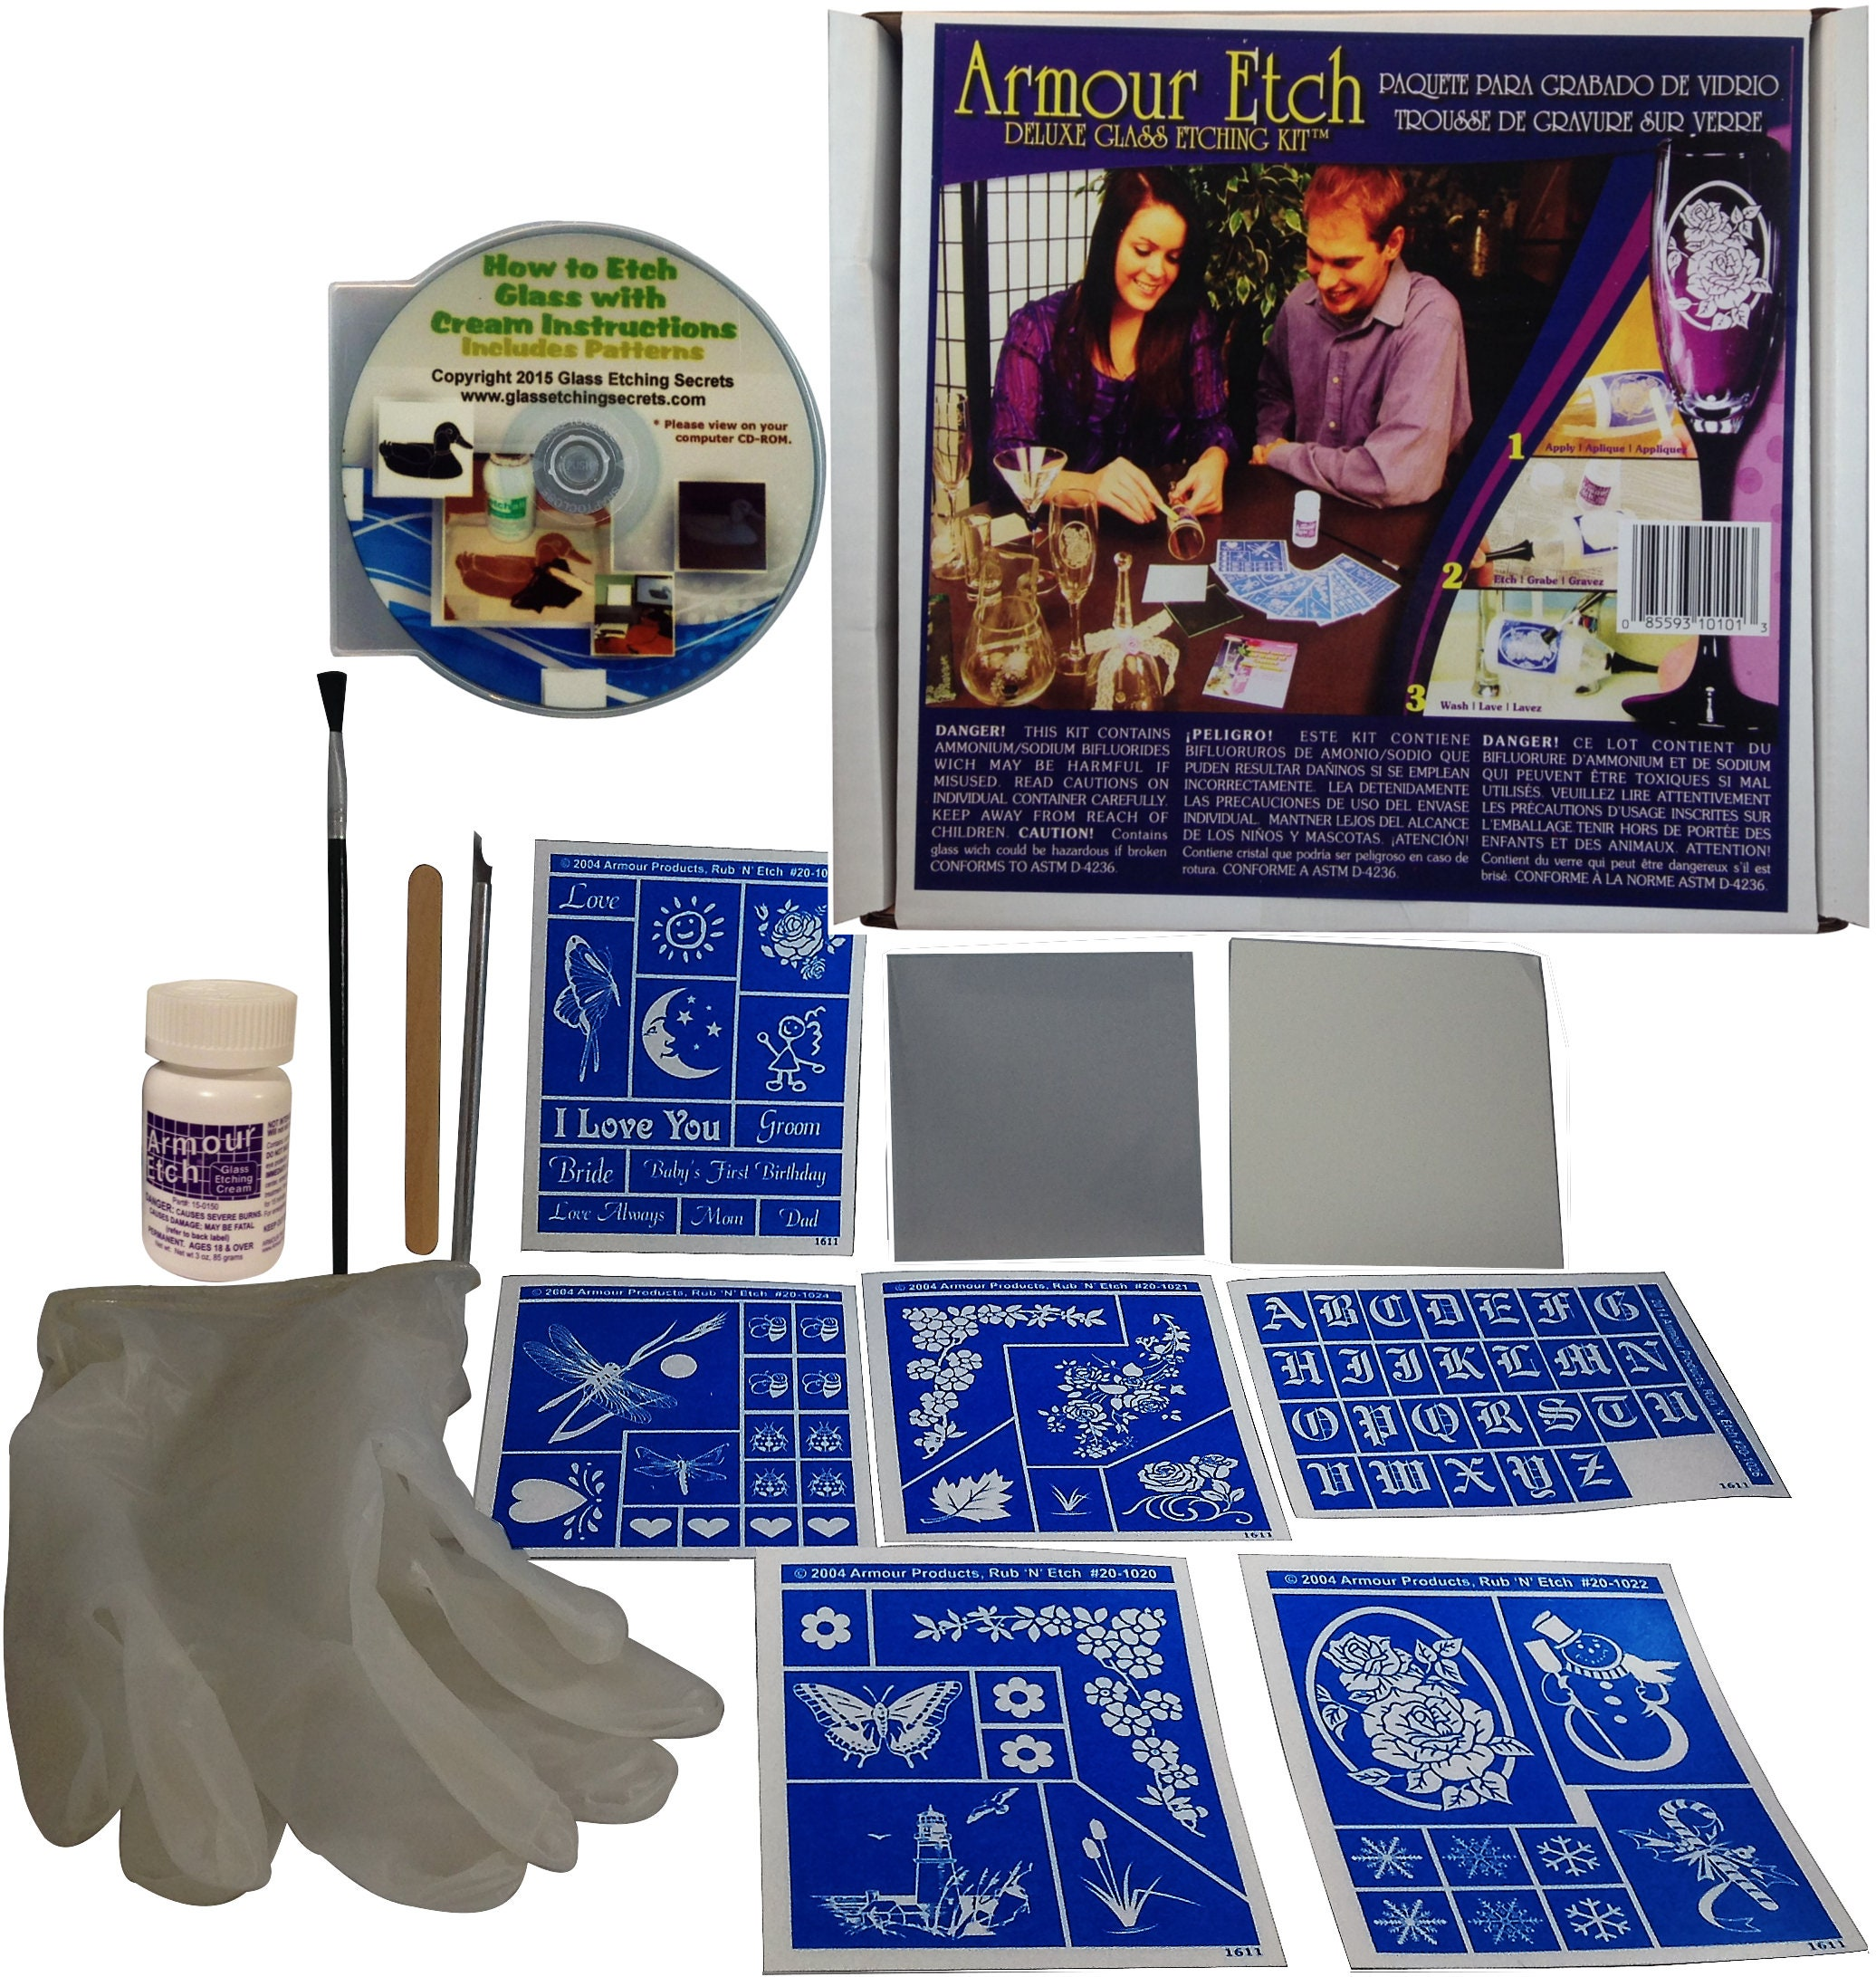 Glass Etching Kit Deluxe: Acid Etching Cream, Stencils, Gloves, Cutting  Knife, Brush + Free How to Etch Glass & Patterns CD